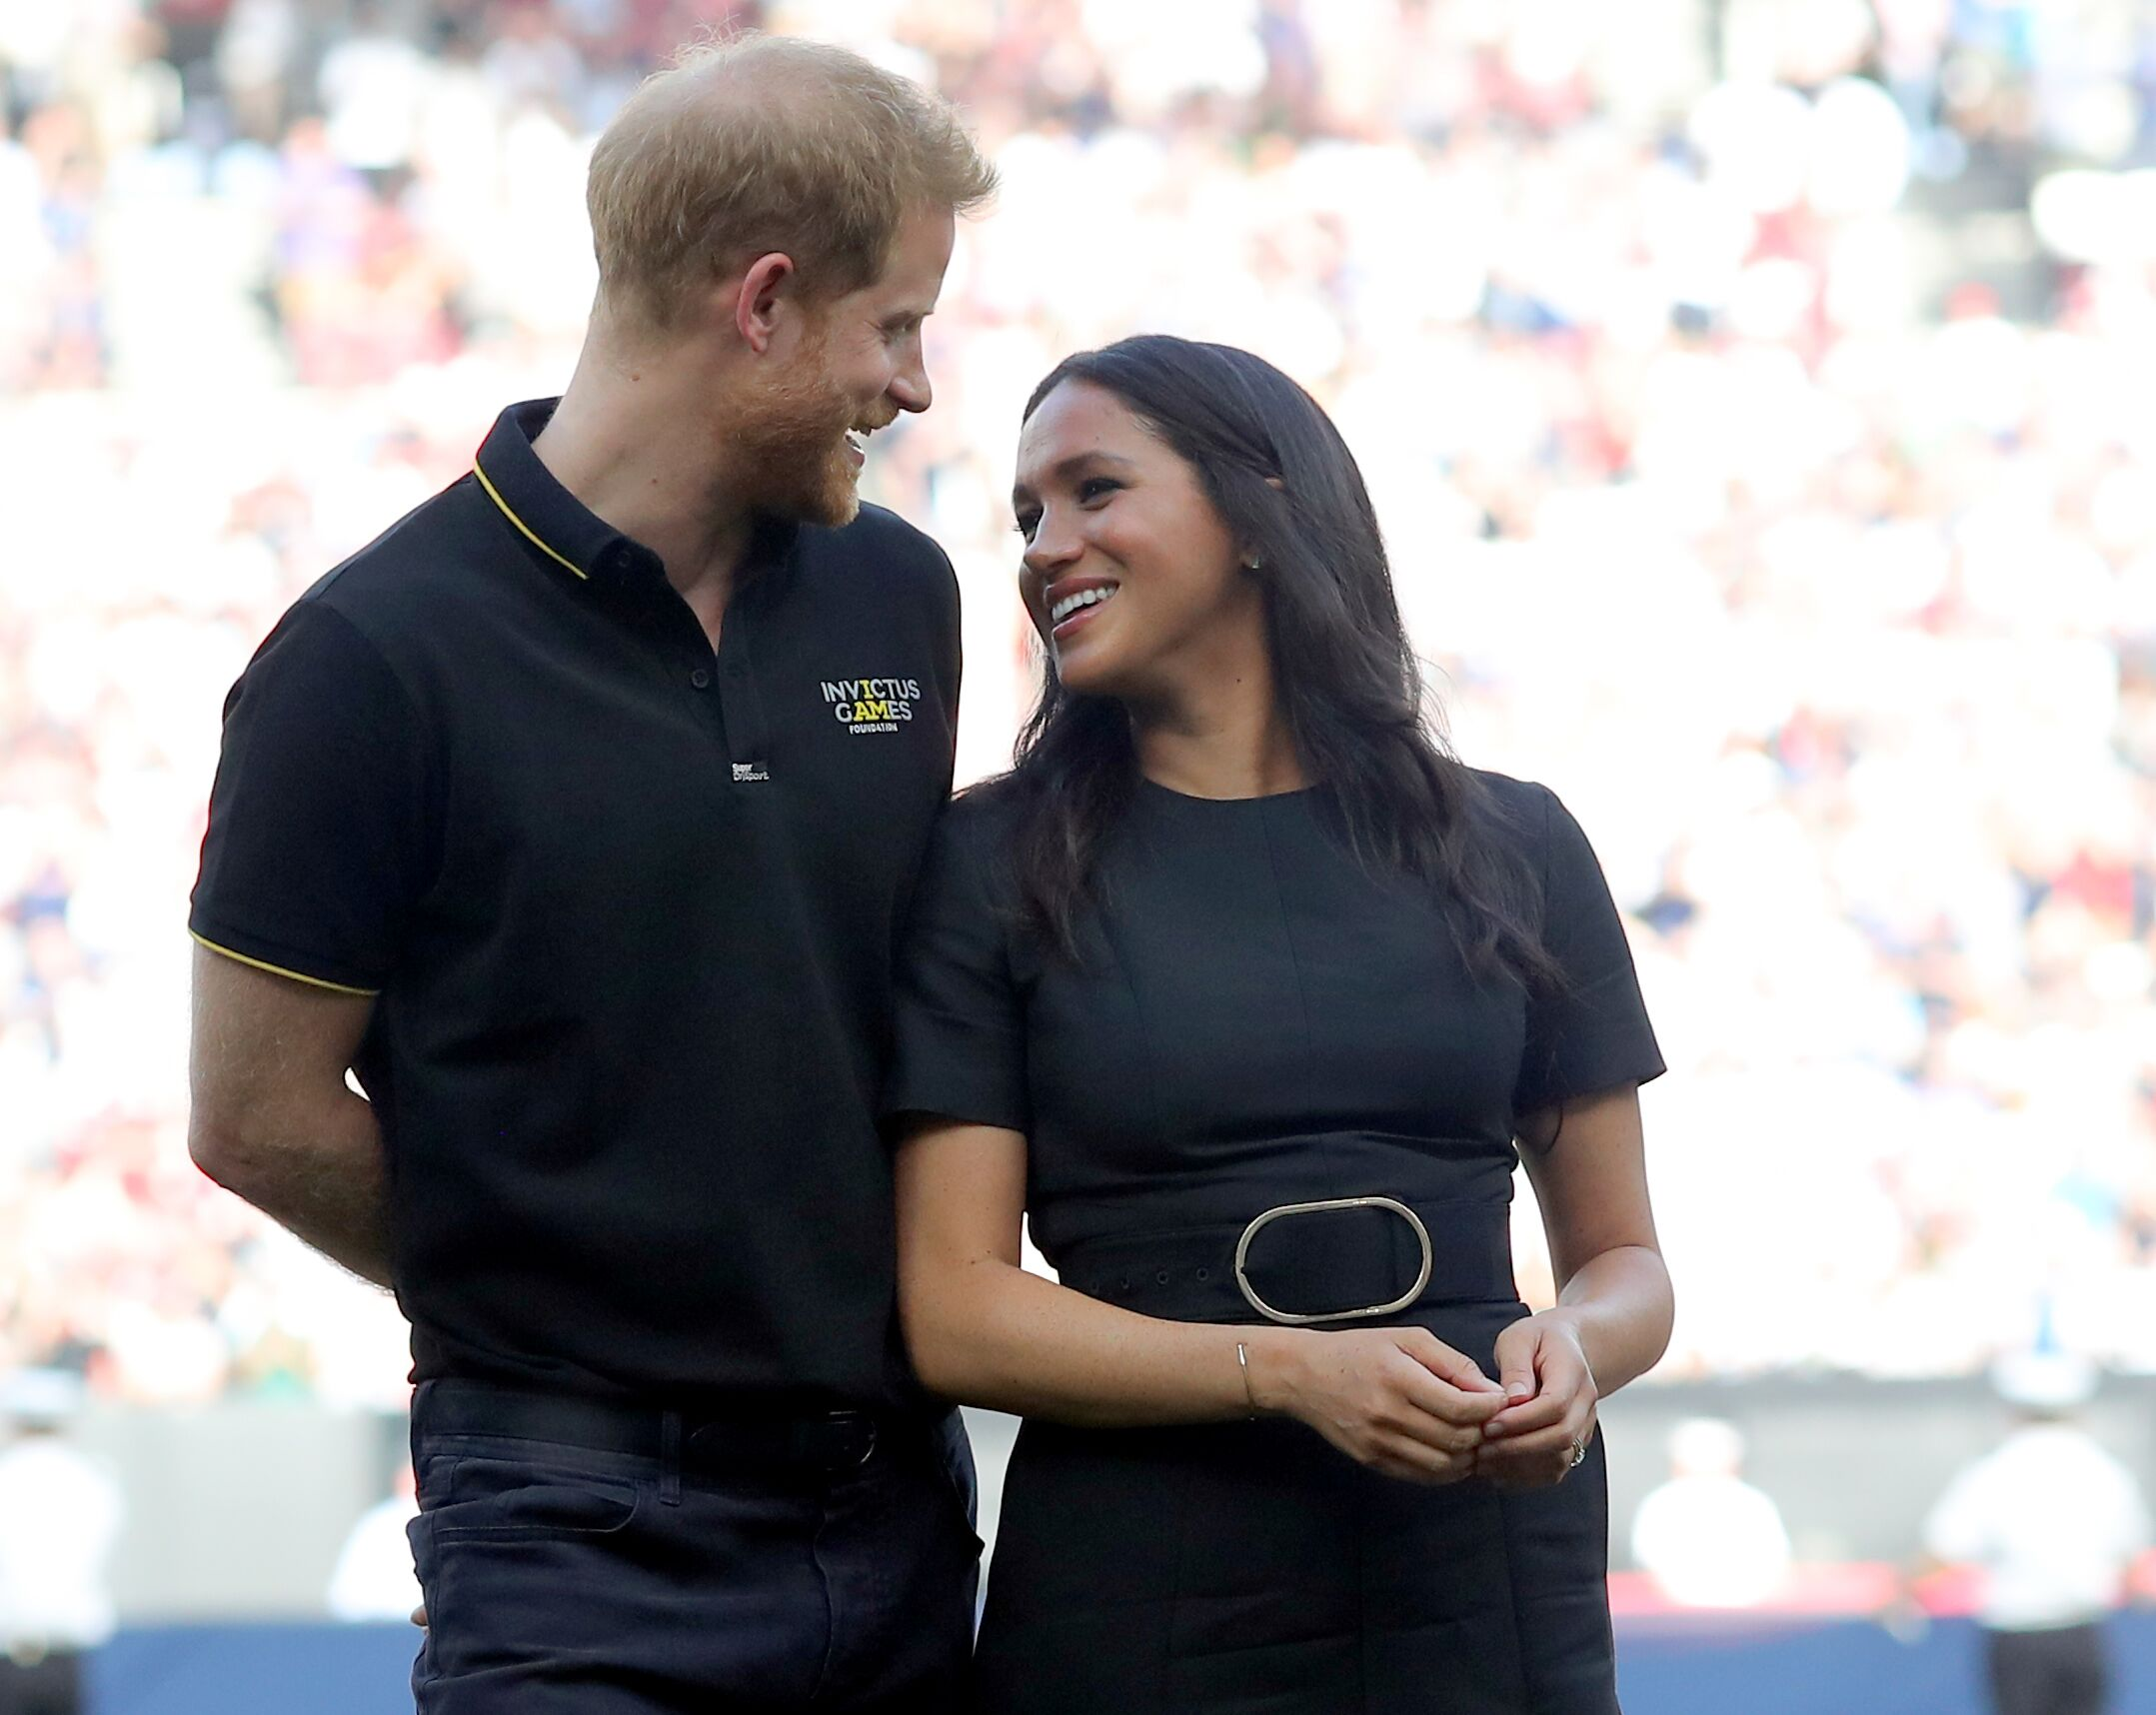 Prince Harry and Meghan Markle at the Invictus Games. | Source: Getty Images